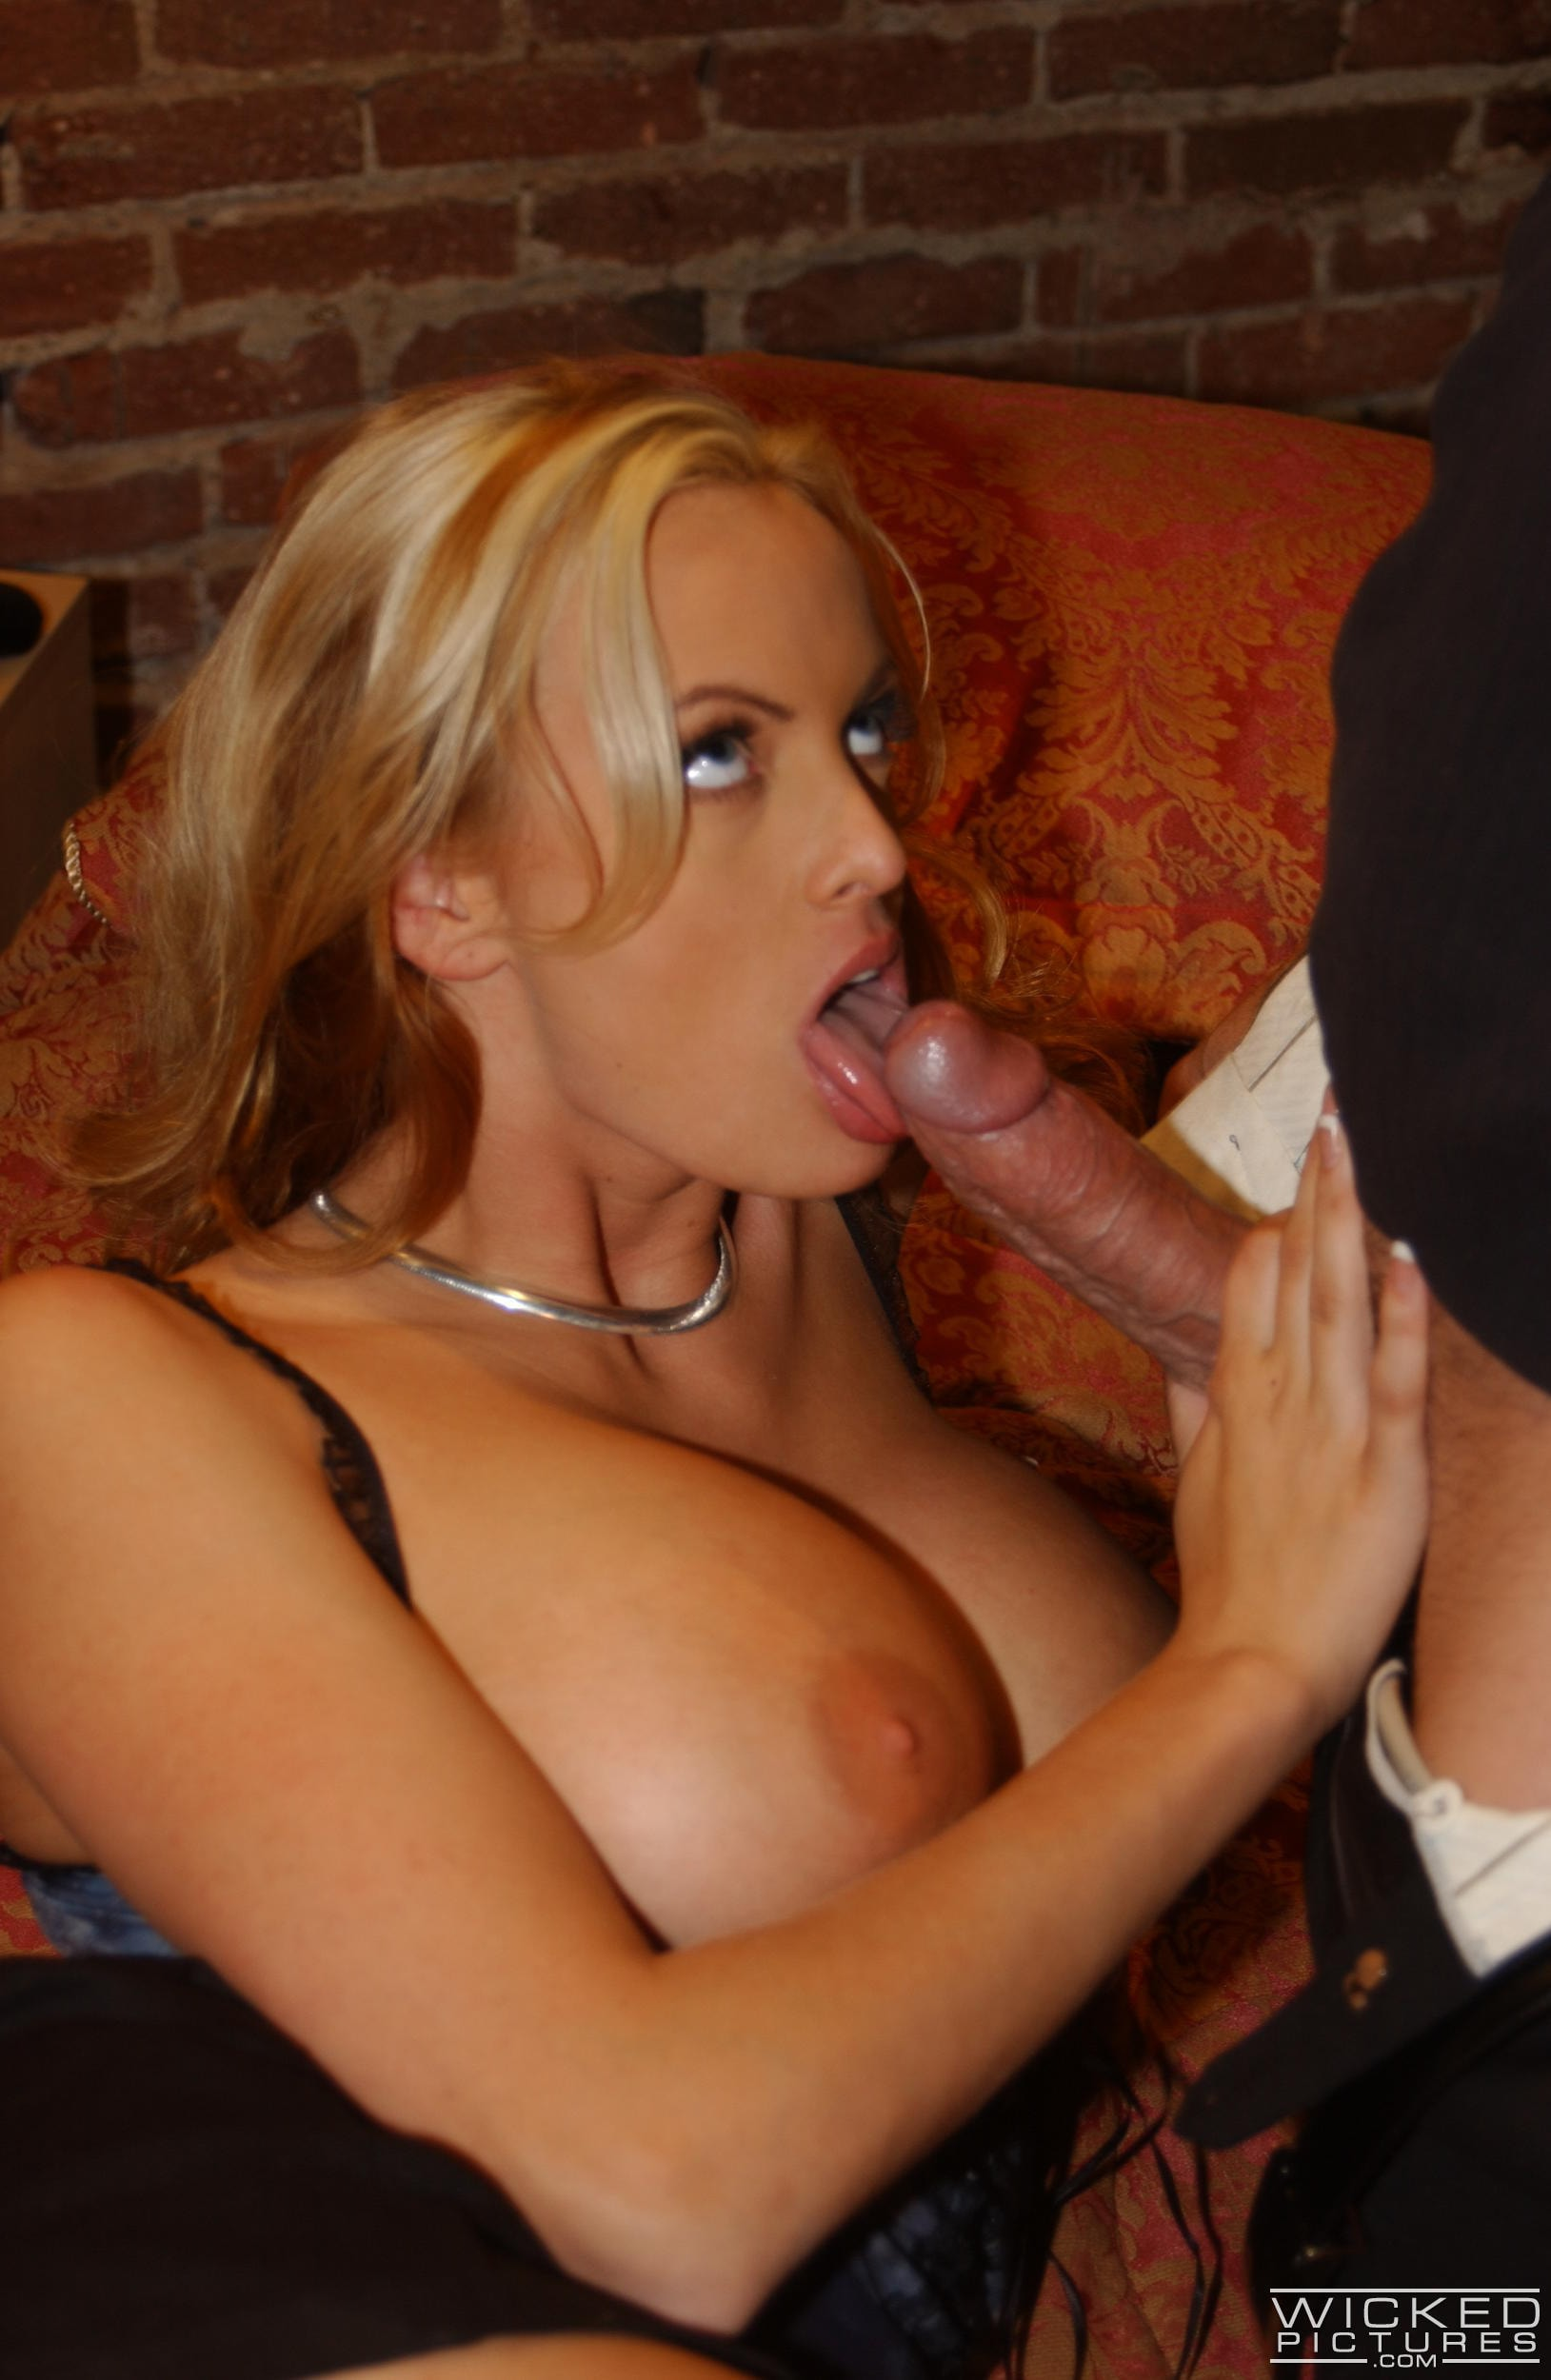 Wicked 'Not A Romance Scene 4' starring Stormy Daniels (Photo 18)